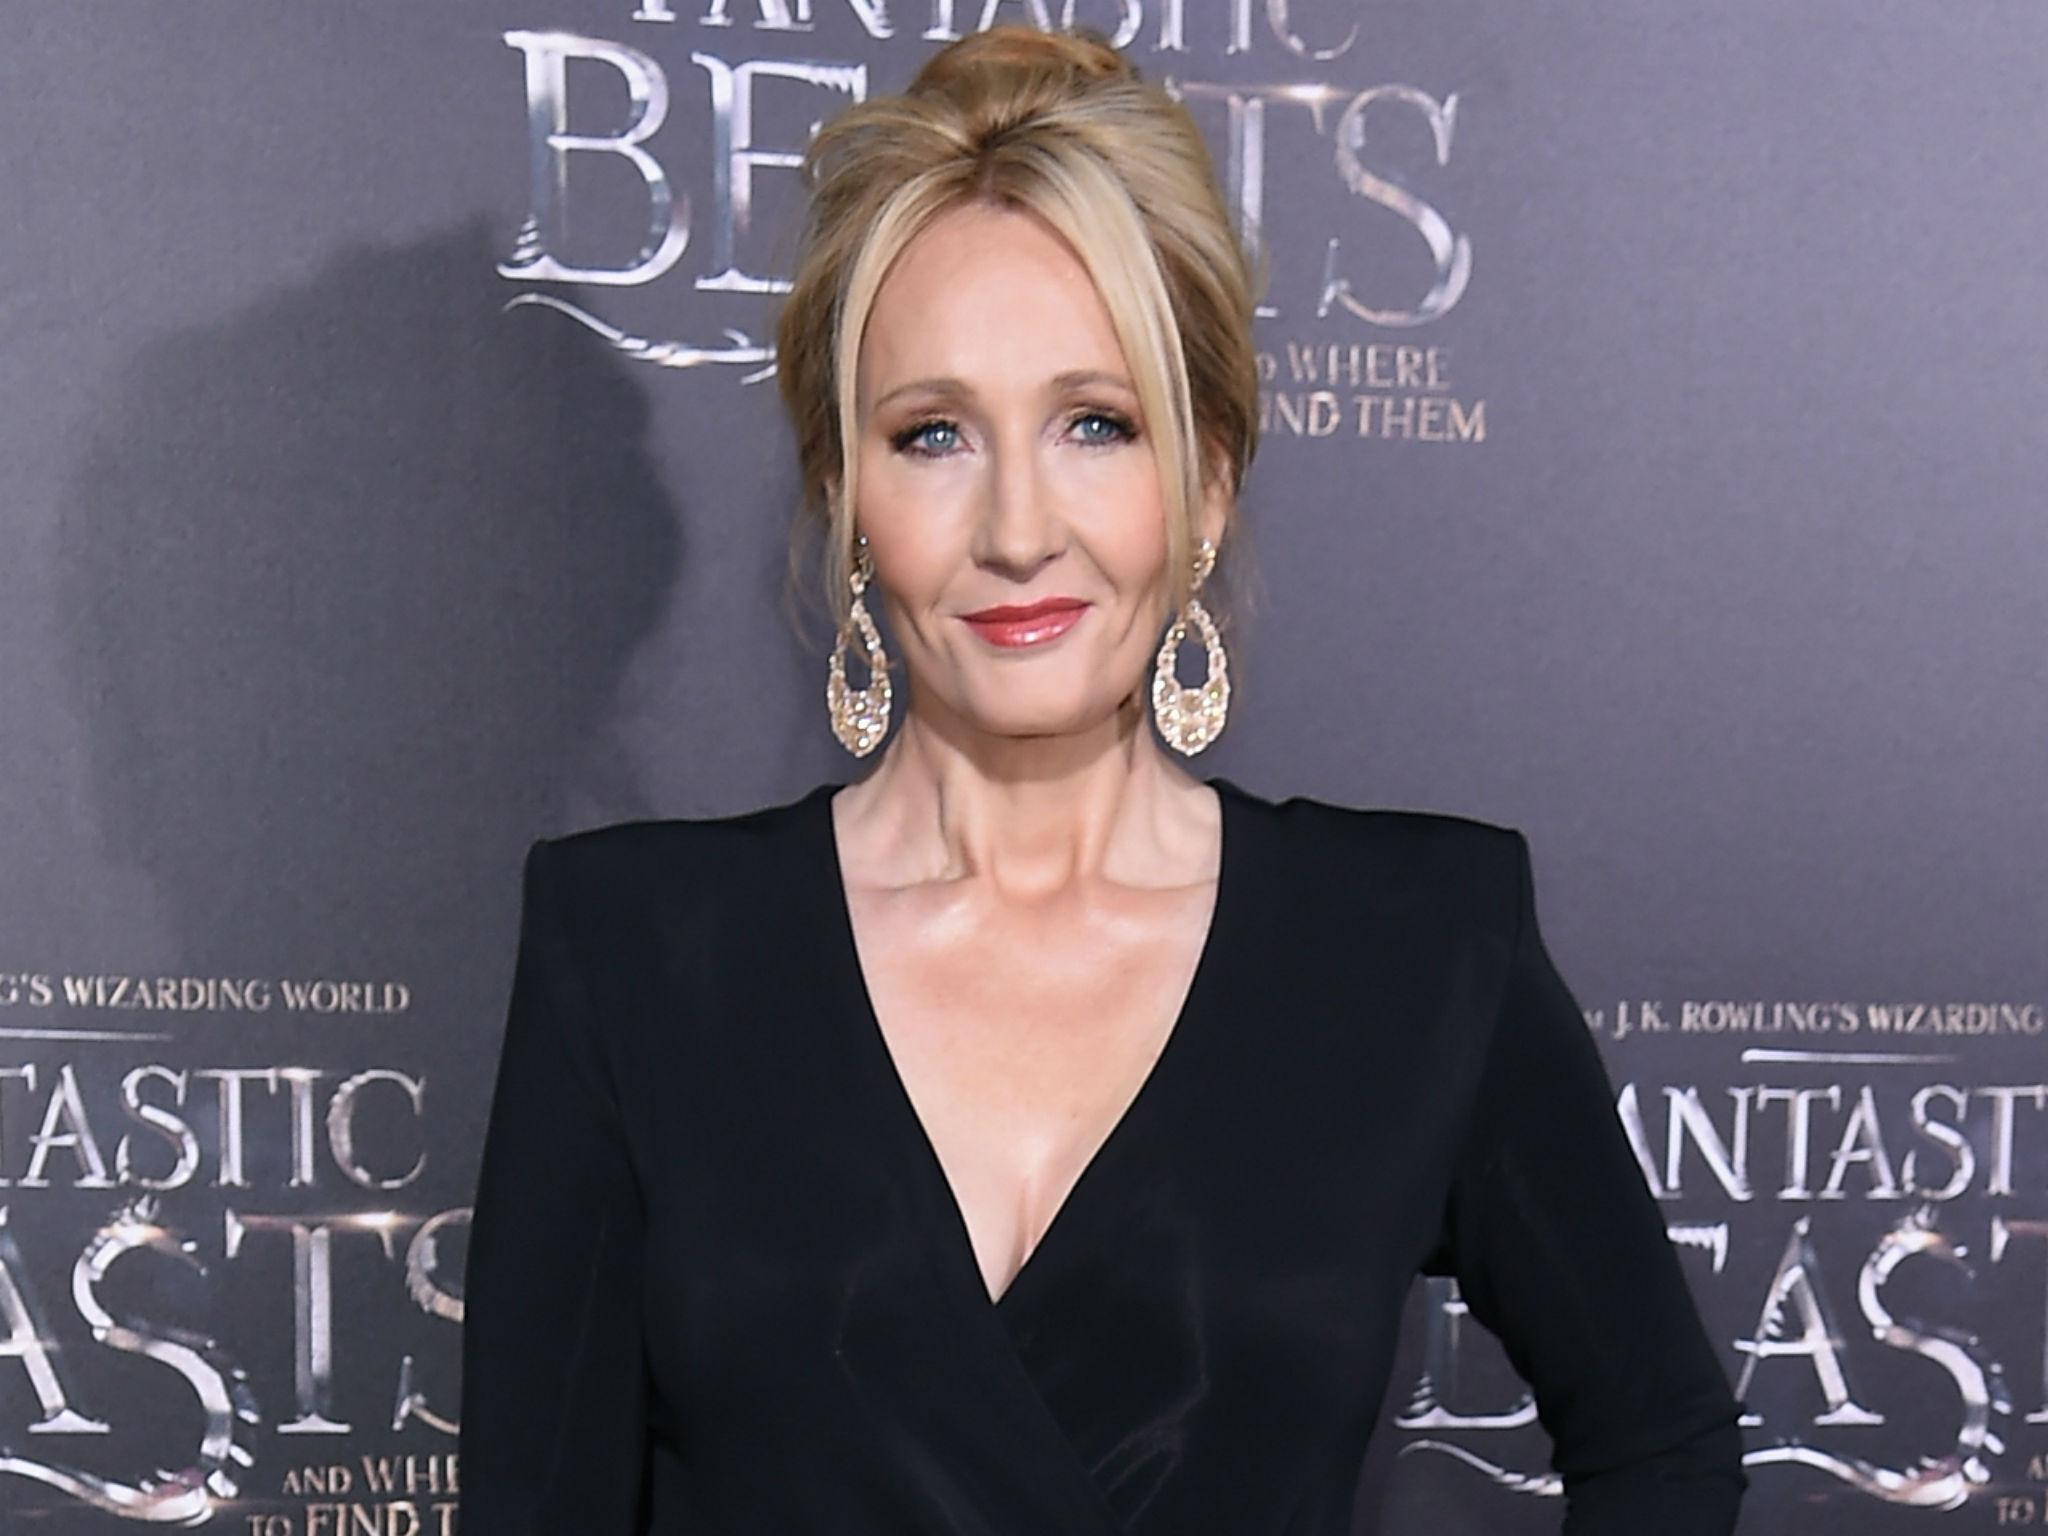 j k rowling in bleak mood after election but refuses to talk j k rowling in bleak mood after election but refuses to talk about donald trump the independent